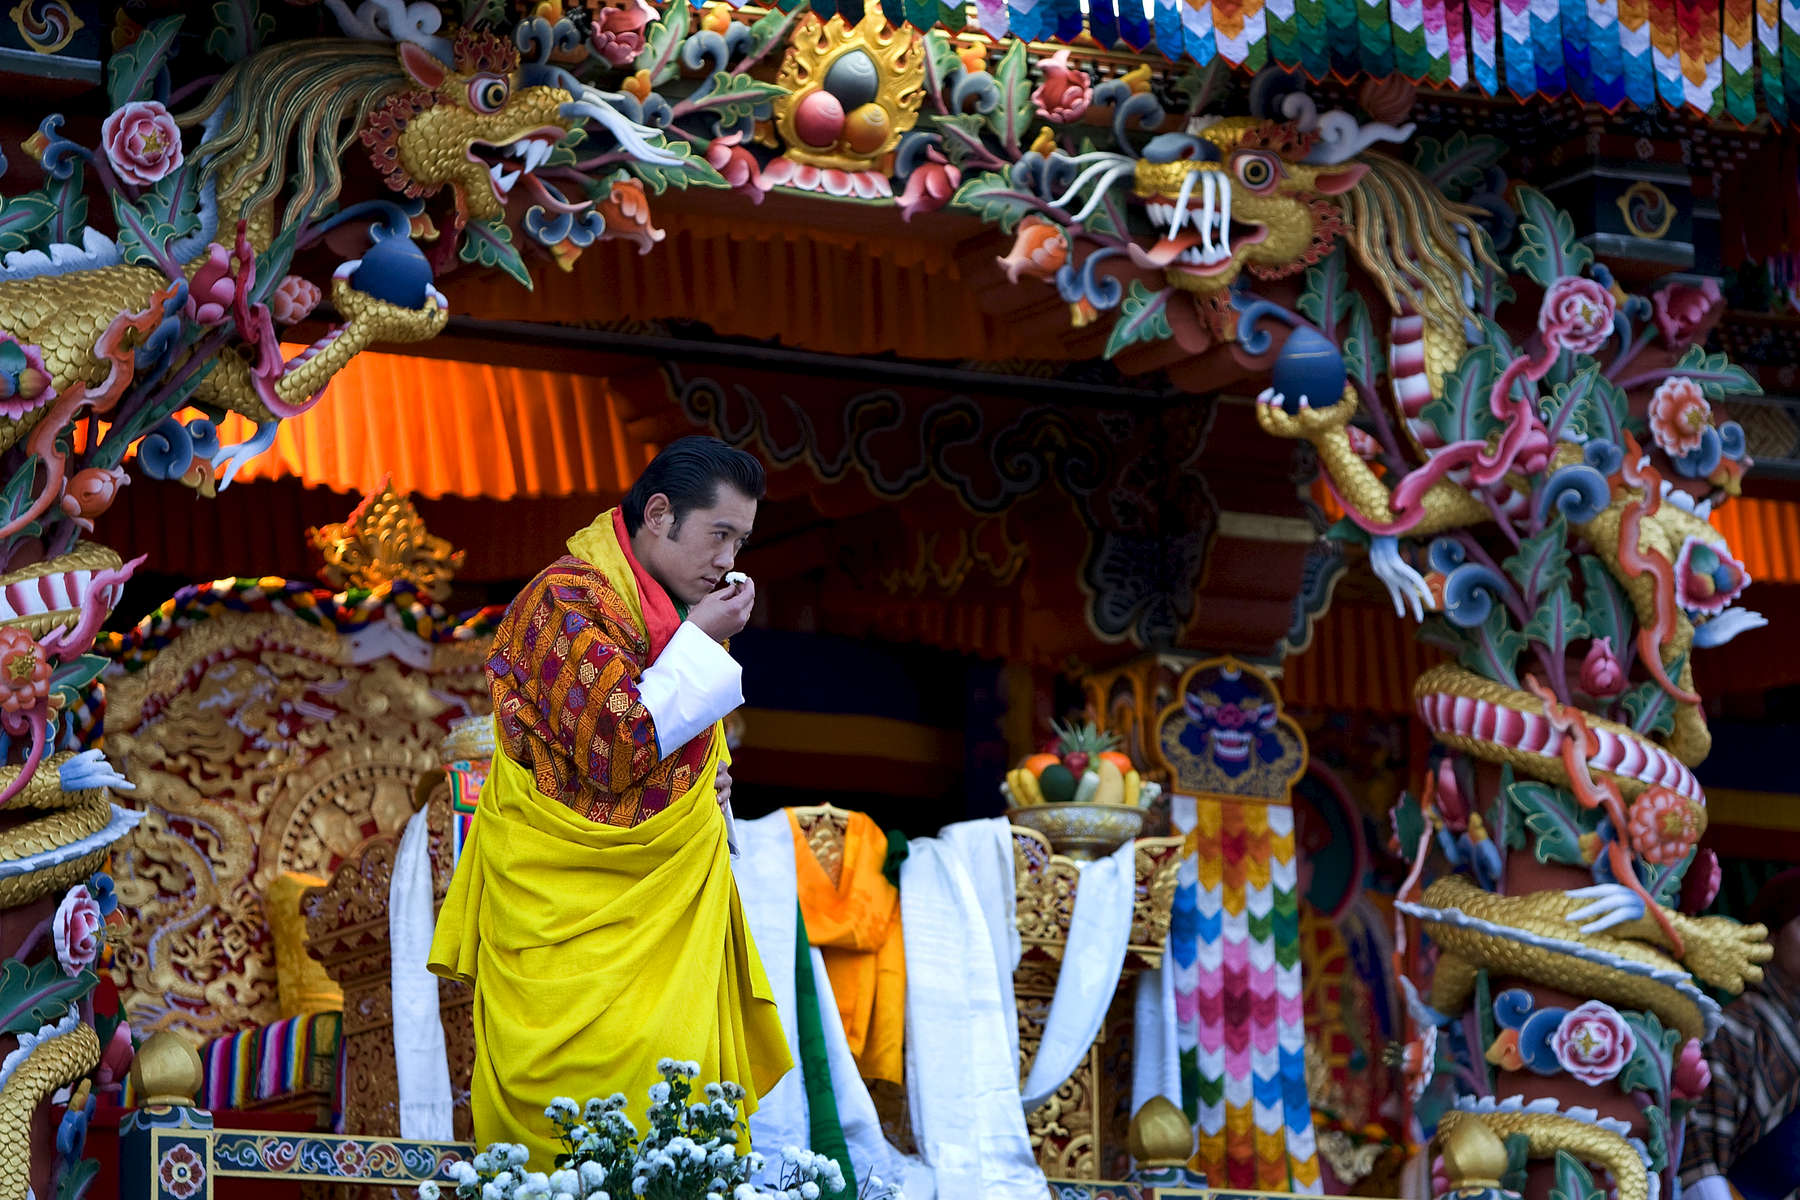 THIMPHU, BHUTAN -NOV 6, 2008: His Majesty Jigme Khesar Namgyel Wangchuck, 28, smells the flowers at the ceremonial grounds of The  Tendrey Thang November 6, 2008 in Thimphu, Bhutan. The young Bhutanese king, anOxford-educated bachelor became the youngest reigning monarch on the planet today. He was handed the Raven Crown by his father, the former King Jigme Singye Wangchuck, in an ornate ceremony in Thimpu, the capital. The tiny Himalayan kingdom, a Buddhist nation of 635,000 people is wedged between China and India .  (Photo by Paula Bronstein/Getty Images)